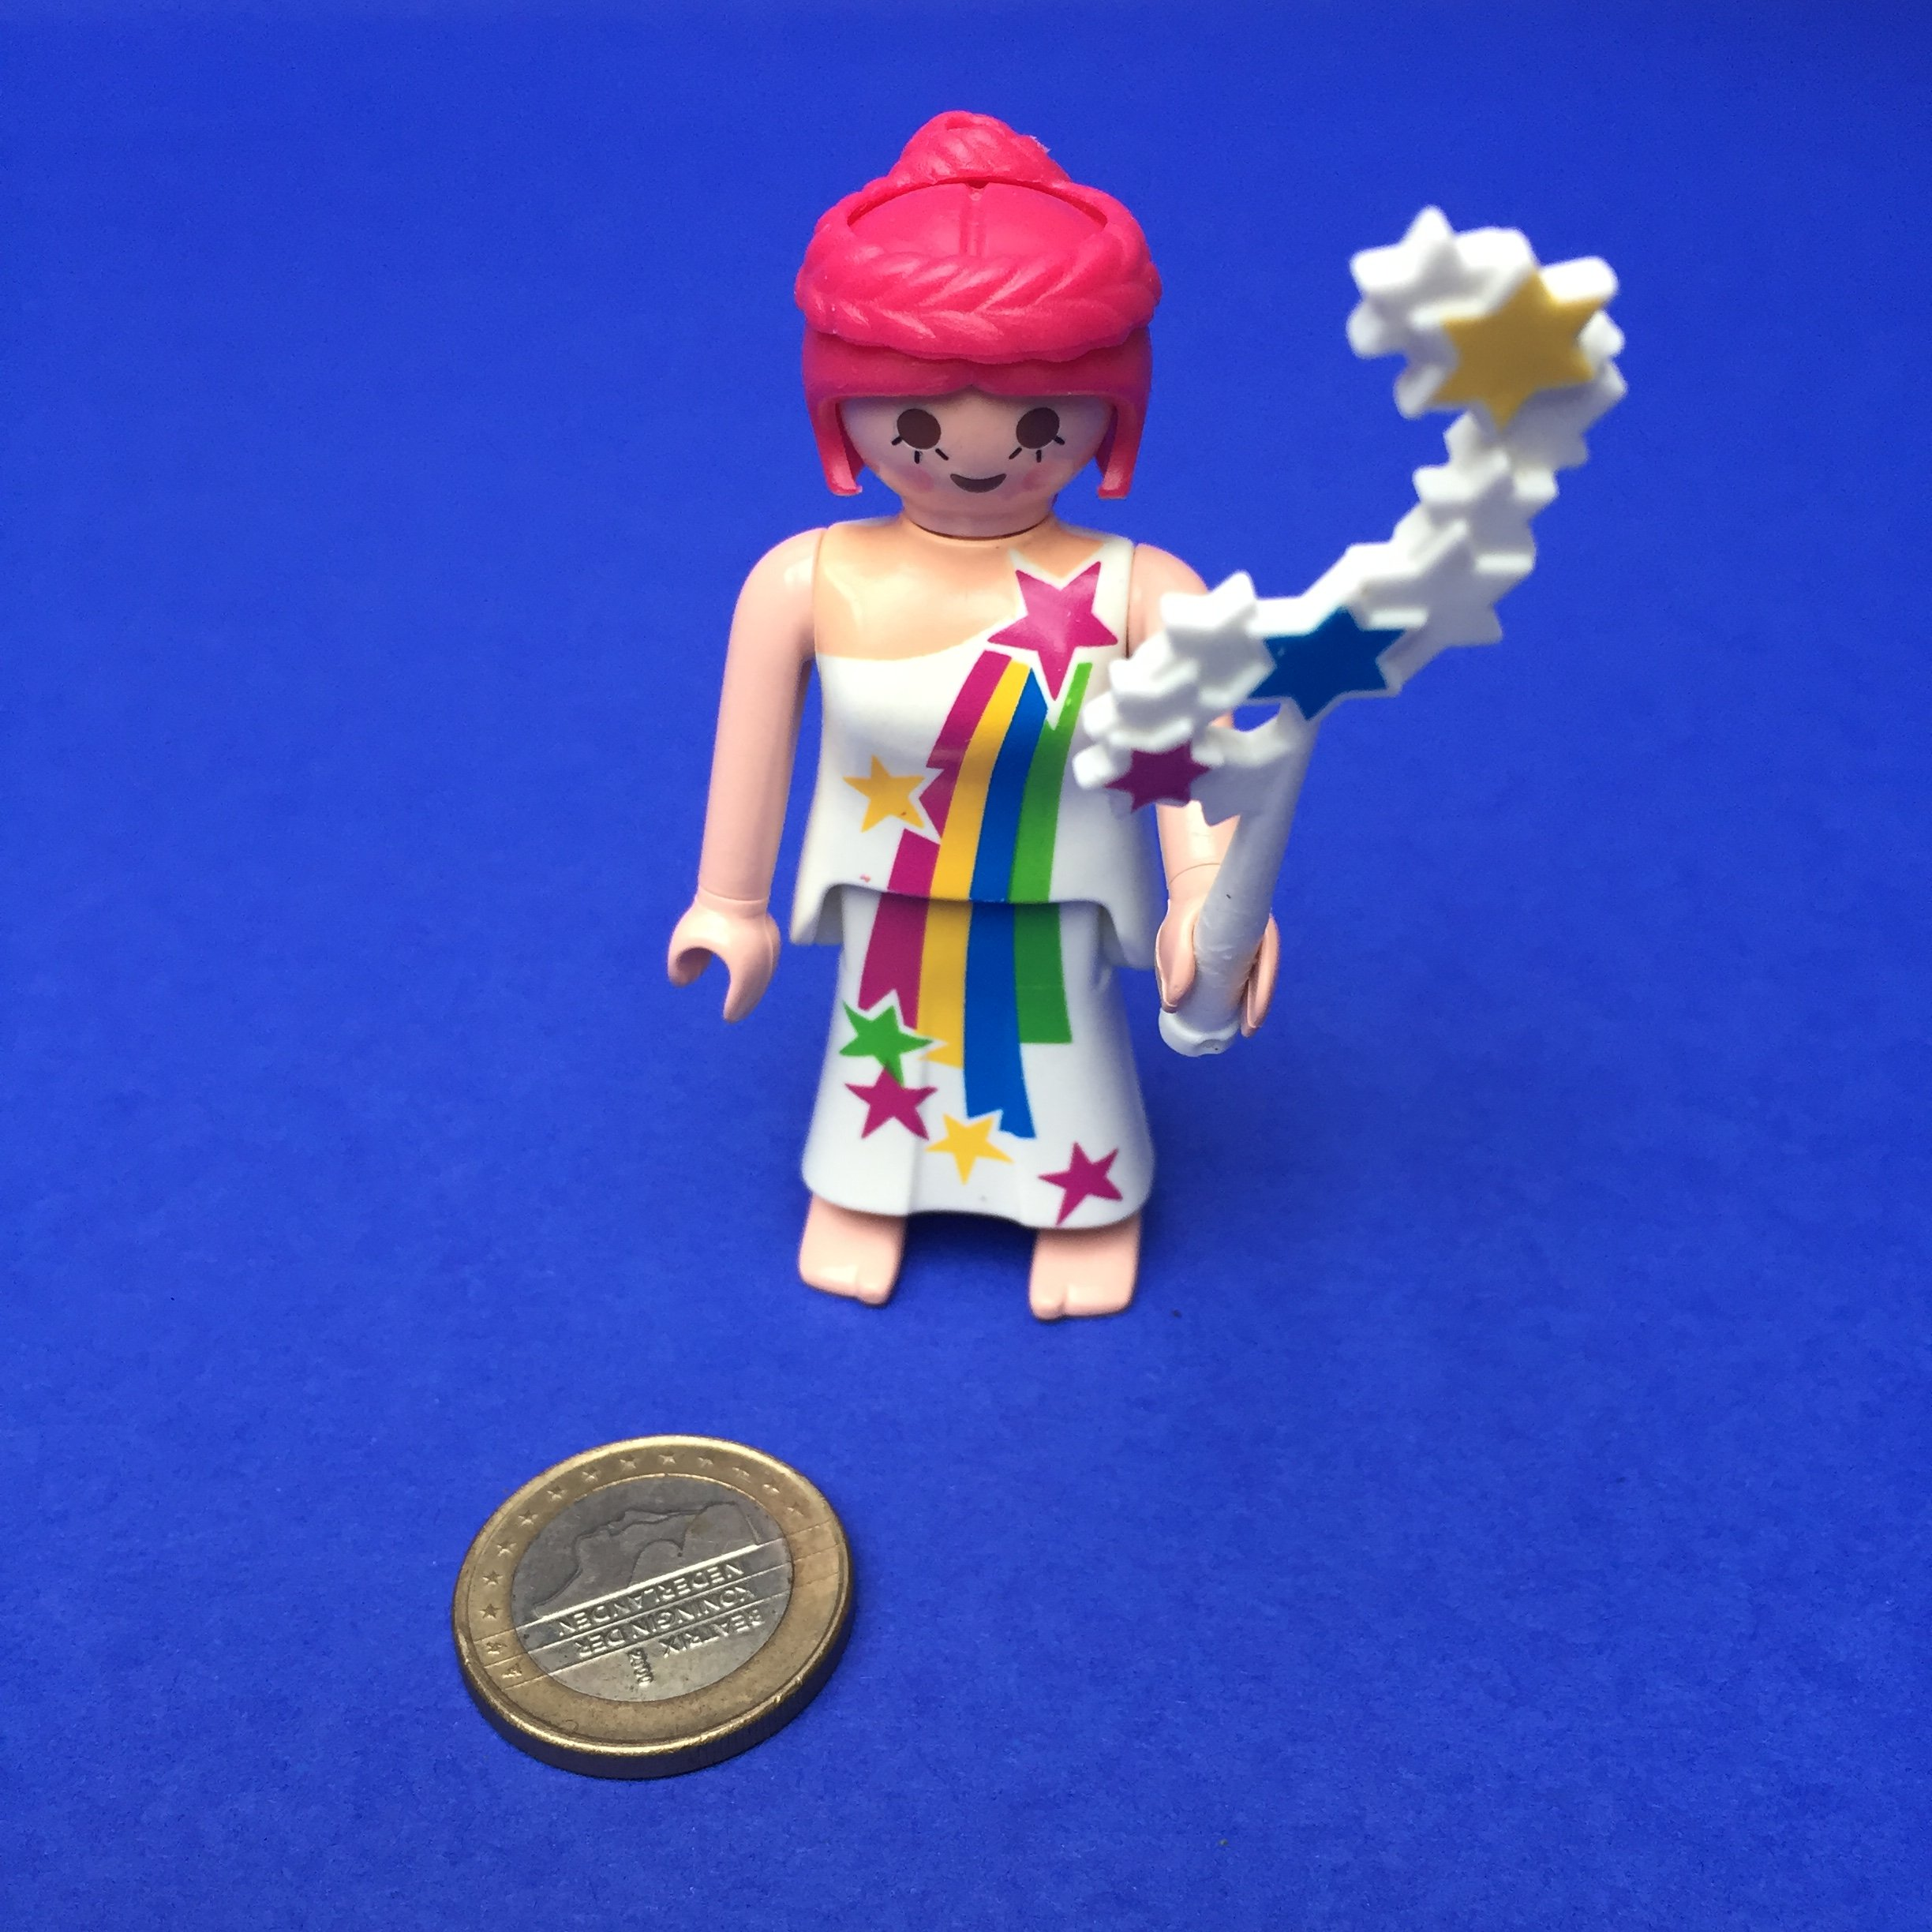 Playmobil-fee